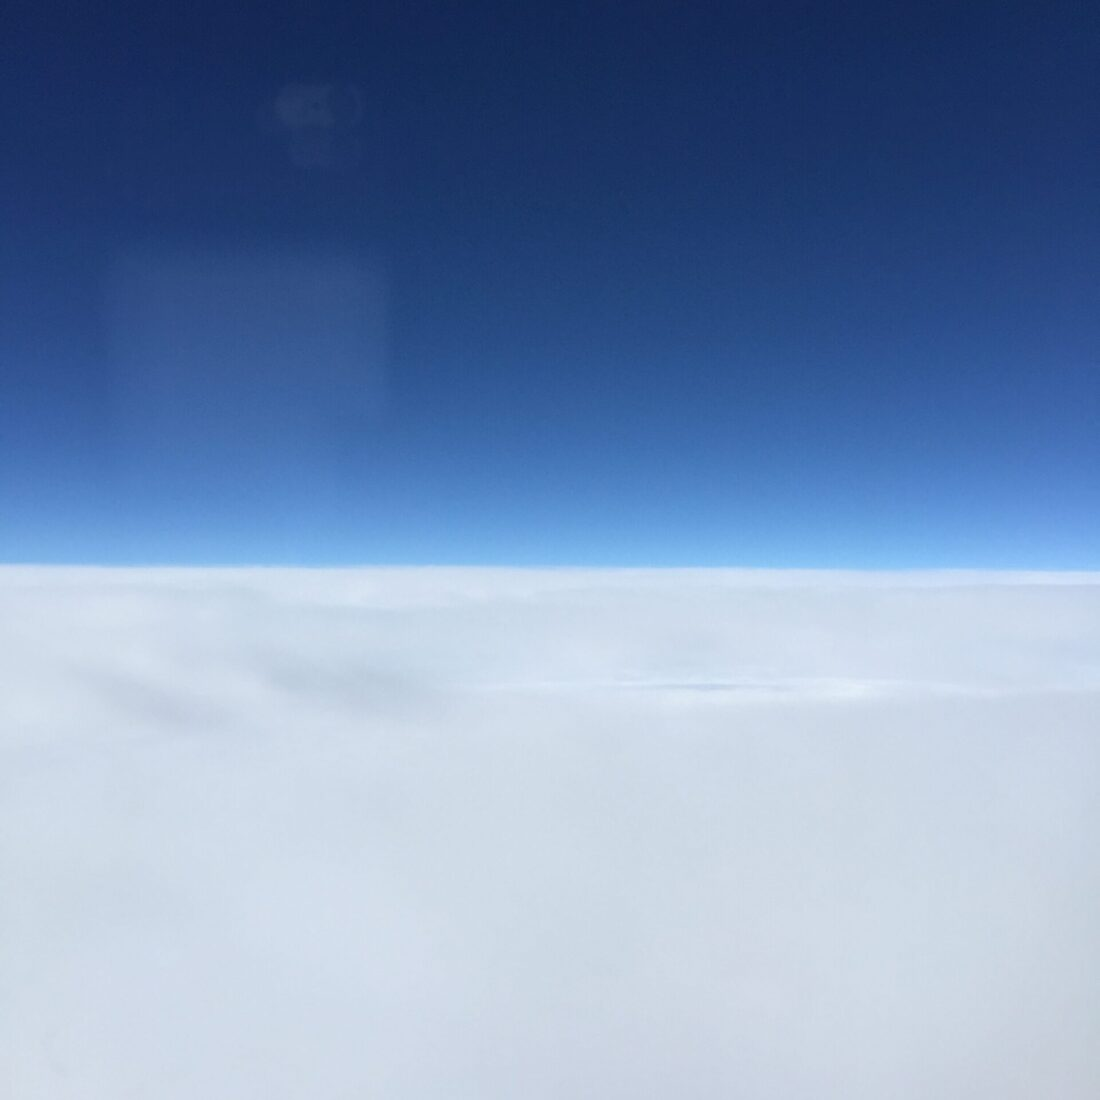 sky and clouds from a plane window